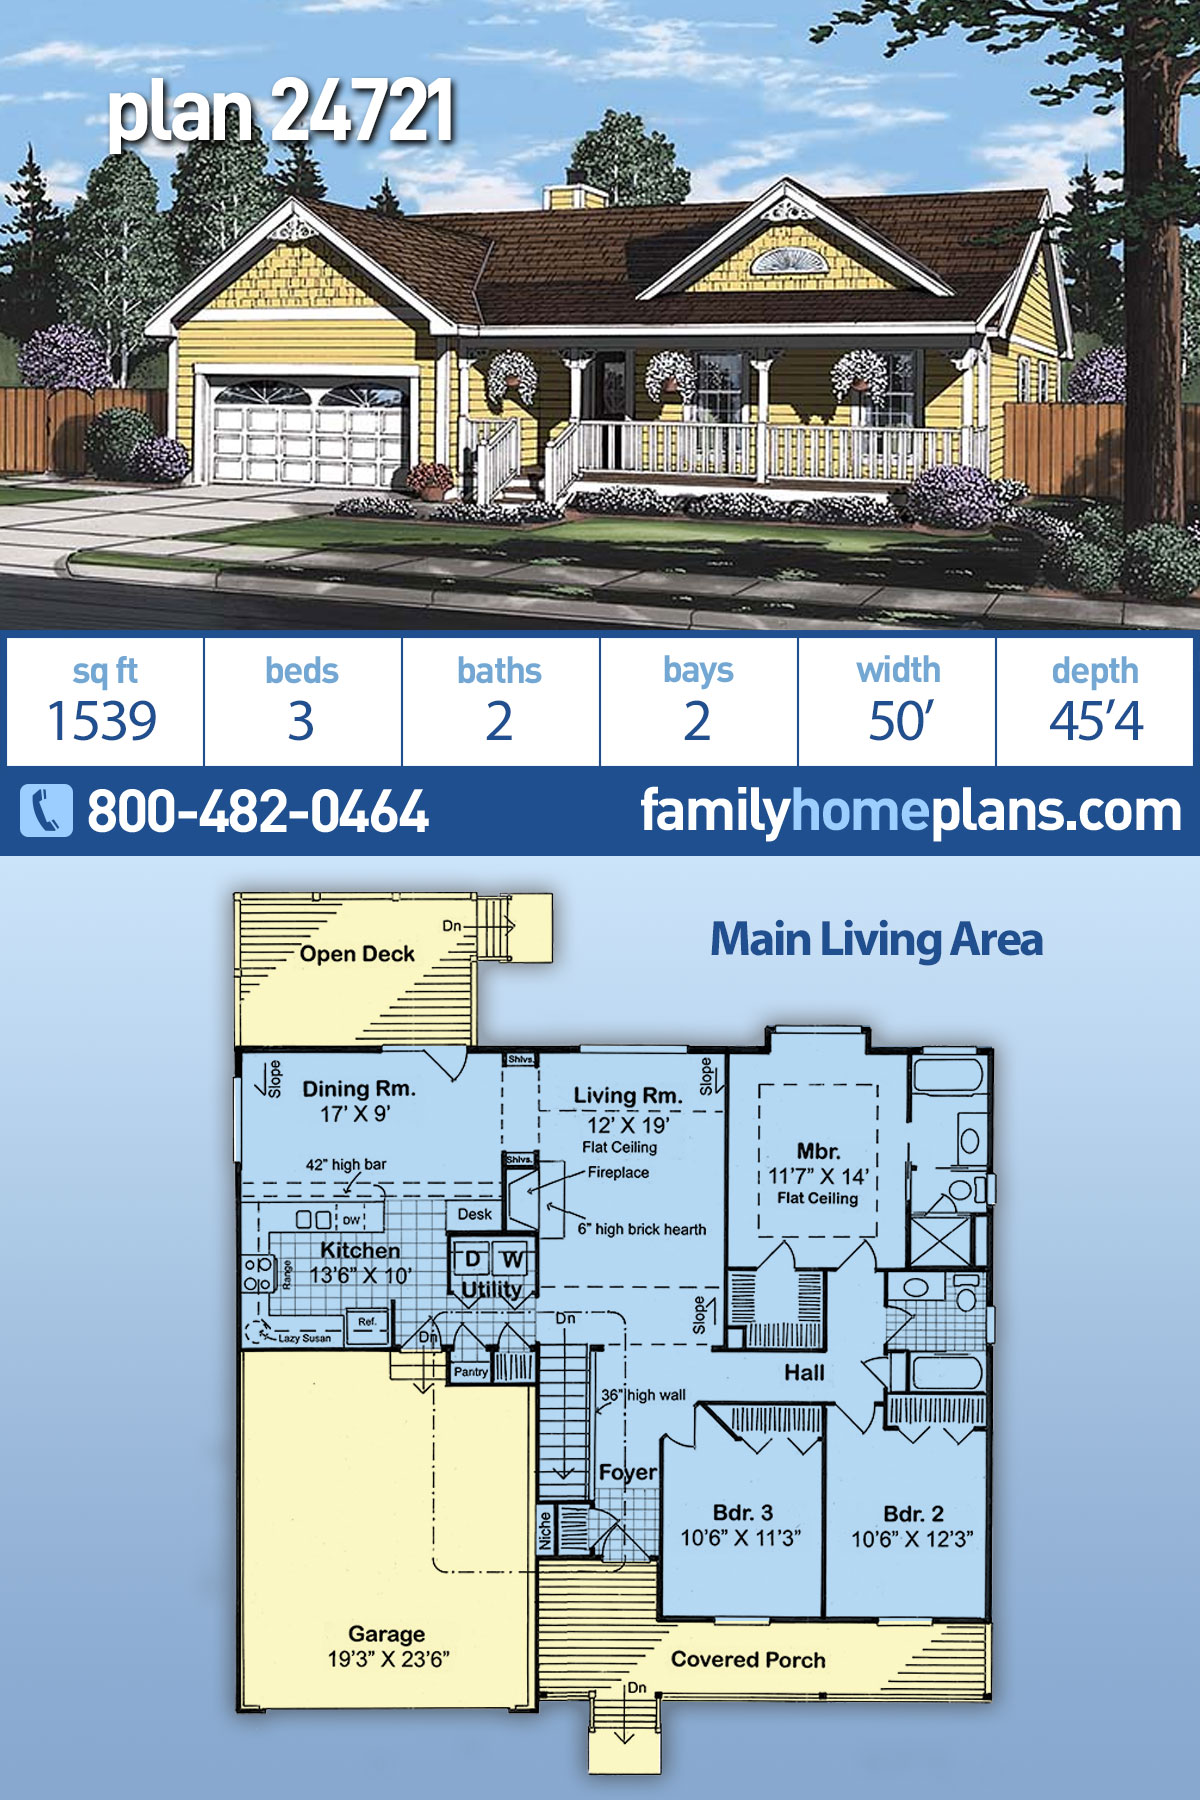 Bungalow, Country, Southern, Traditional House Plan 24721 with 3 Beds, 2 Baths, 2 Car Garage